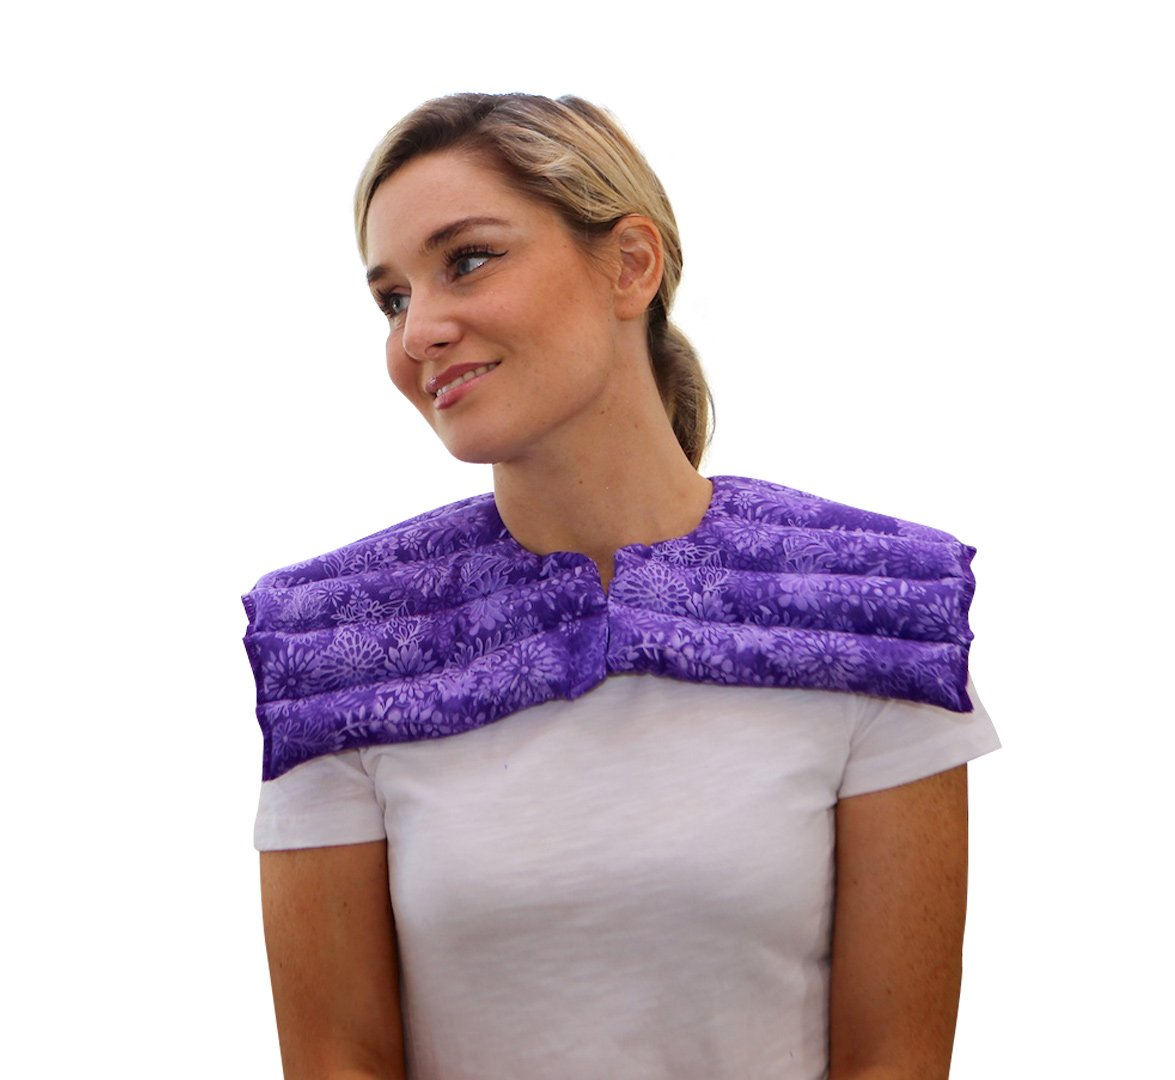 Upper Body Neck & Shoulder Wrap- Microwavable & Reusable - Hot and Cold Therapy for Anxiety, Stress, Tension Relief by Nature Creation (Purple Flowers) by Nature Creation